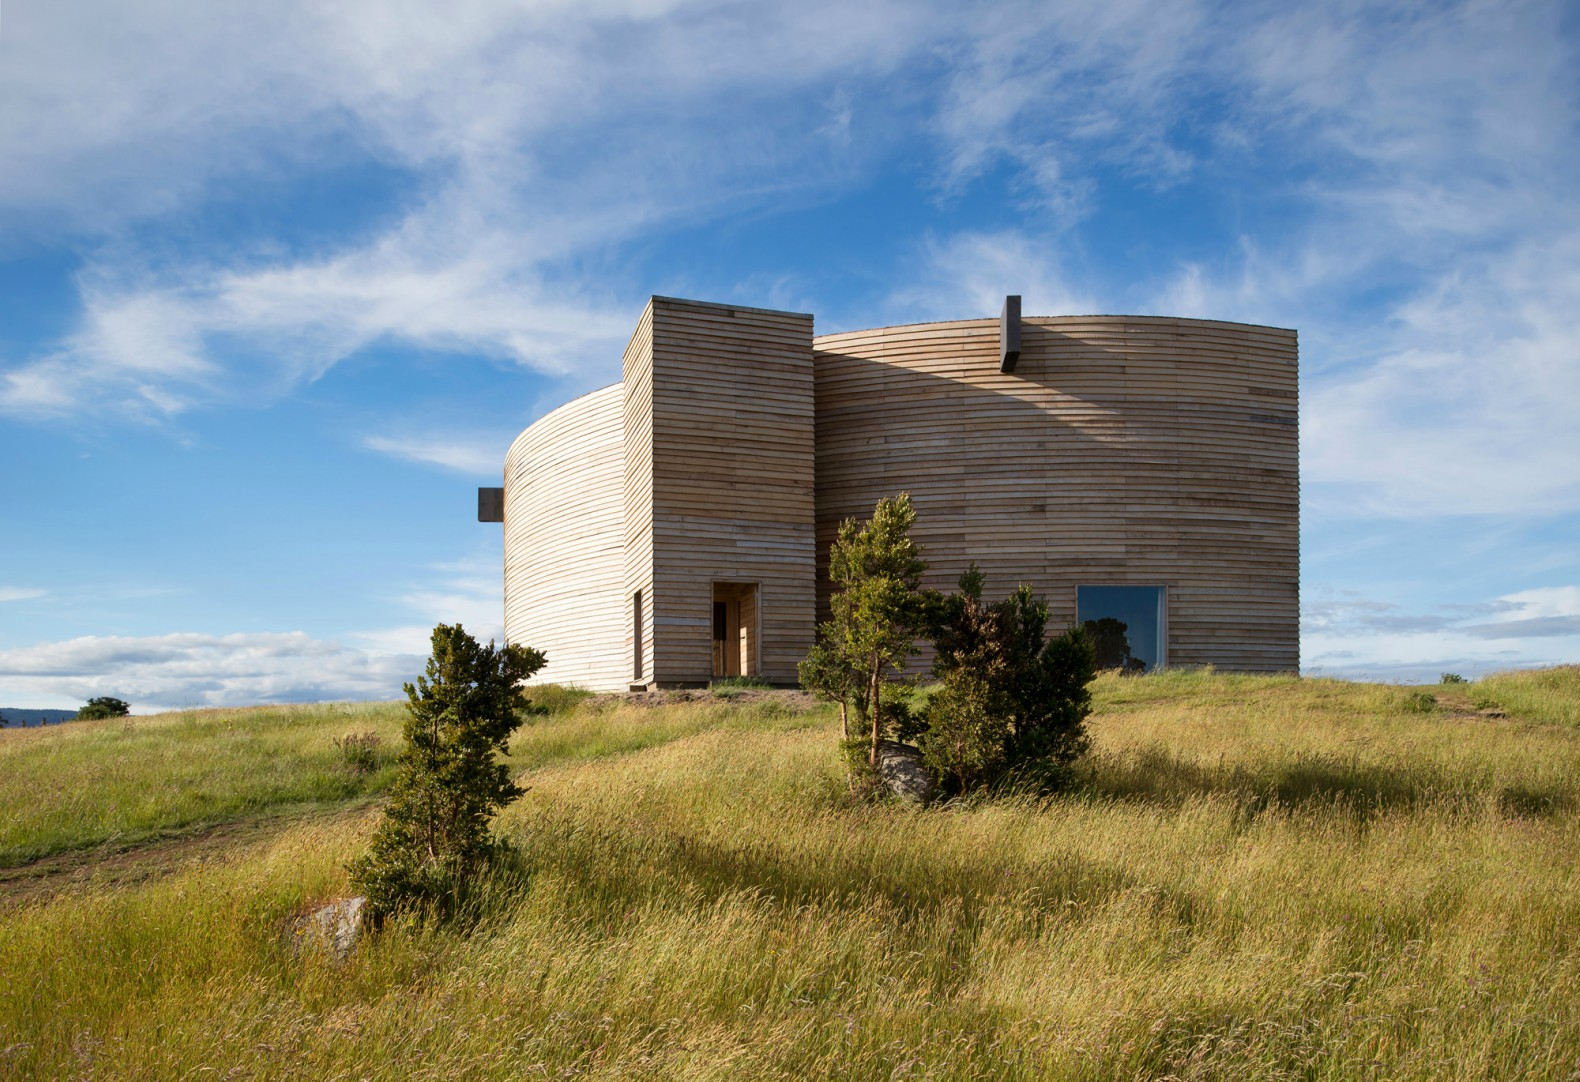 Crescent moon-shaped home on Chilean coast inspired by traditional boat-making techniques